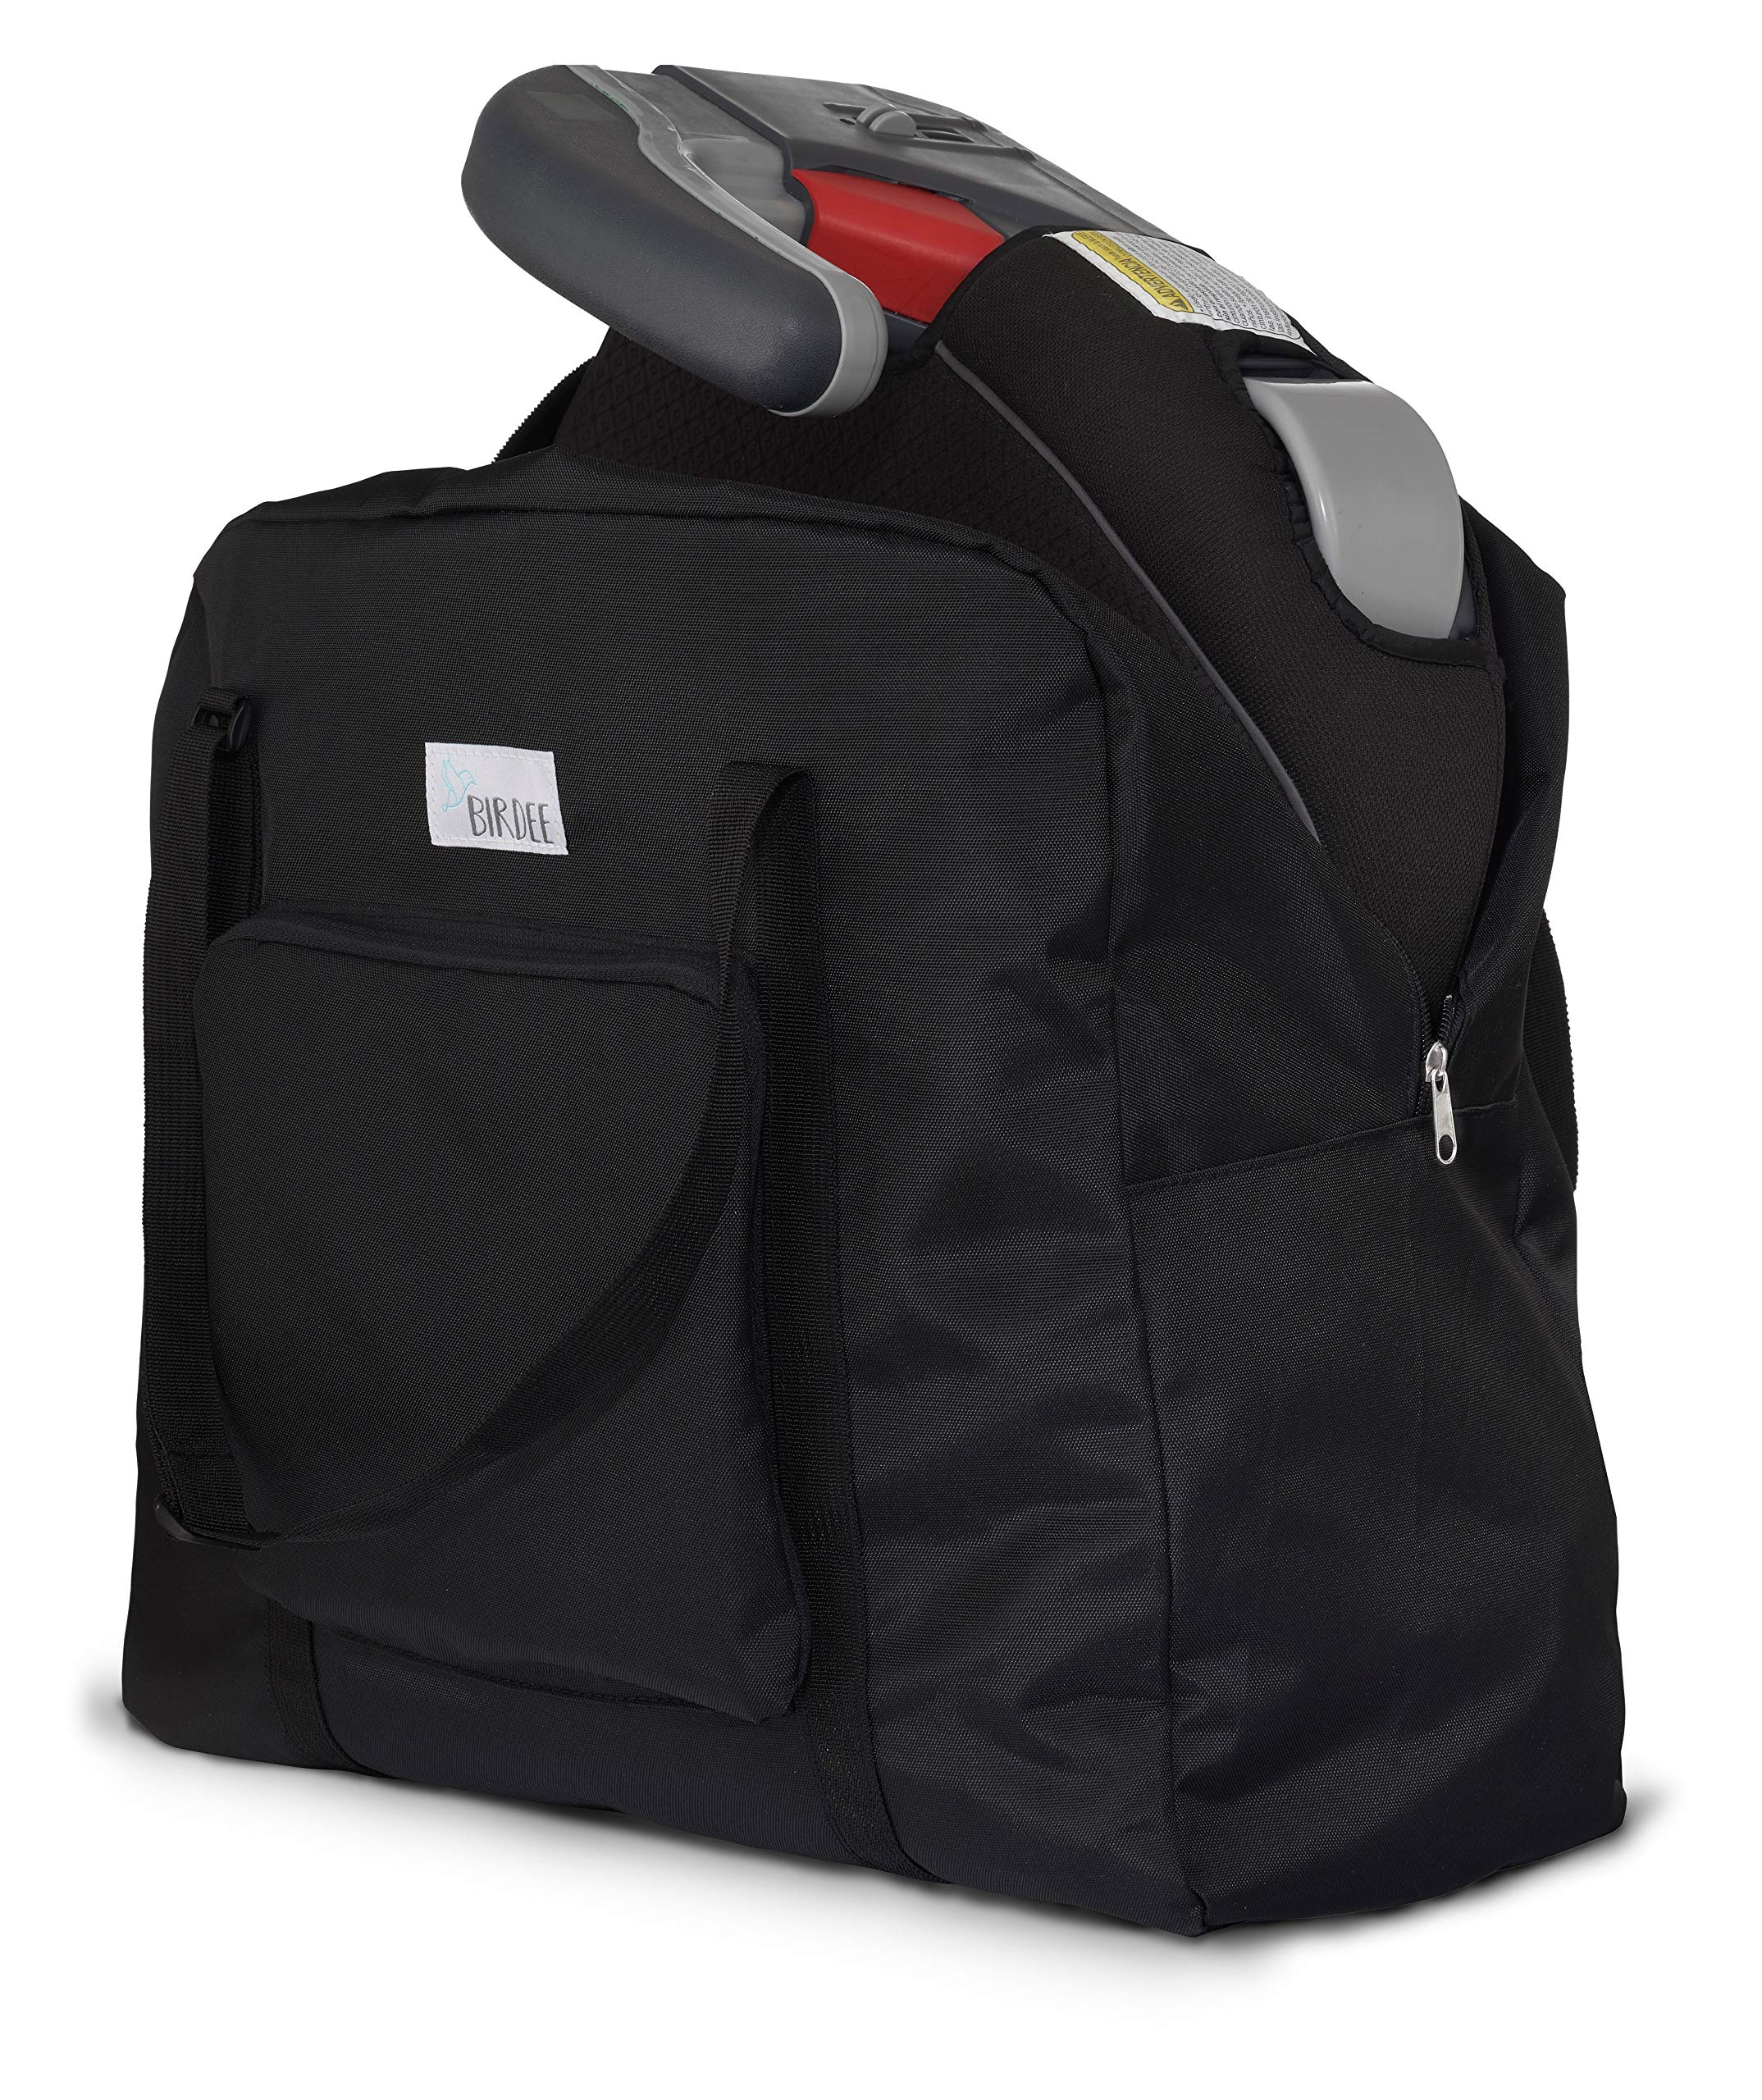 Birdee Backless Booster Seat Travel Bag for Airplane Gate Check and Carrier for Travel by Birdee